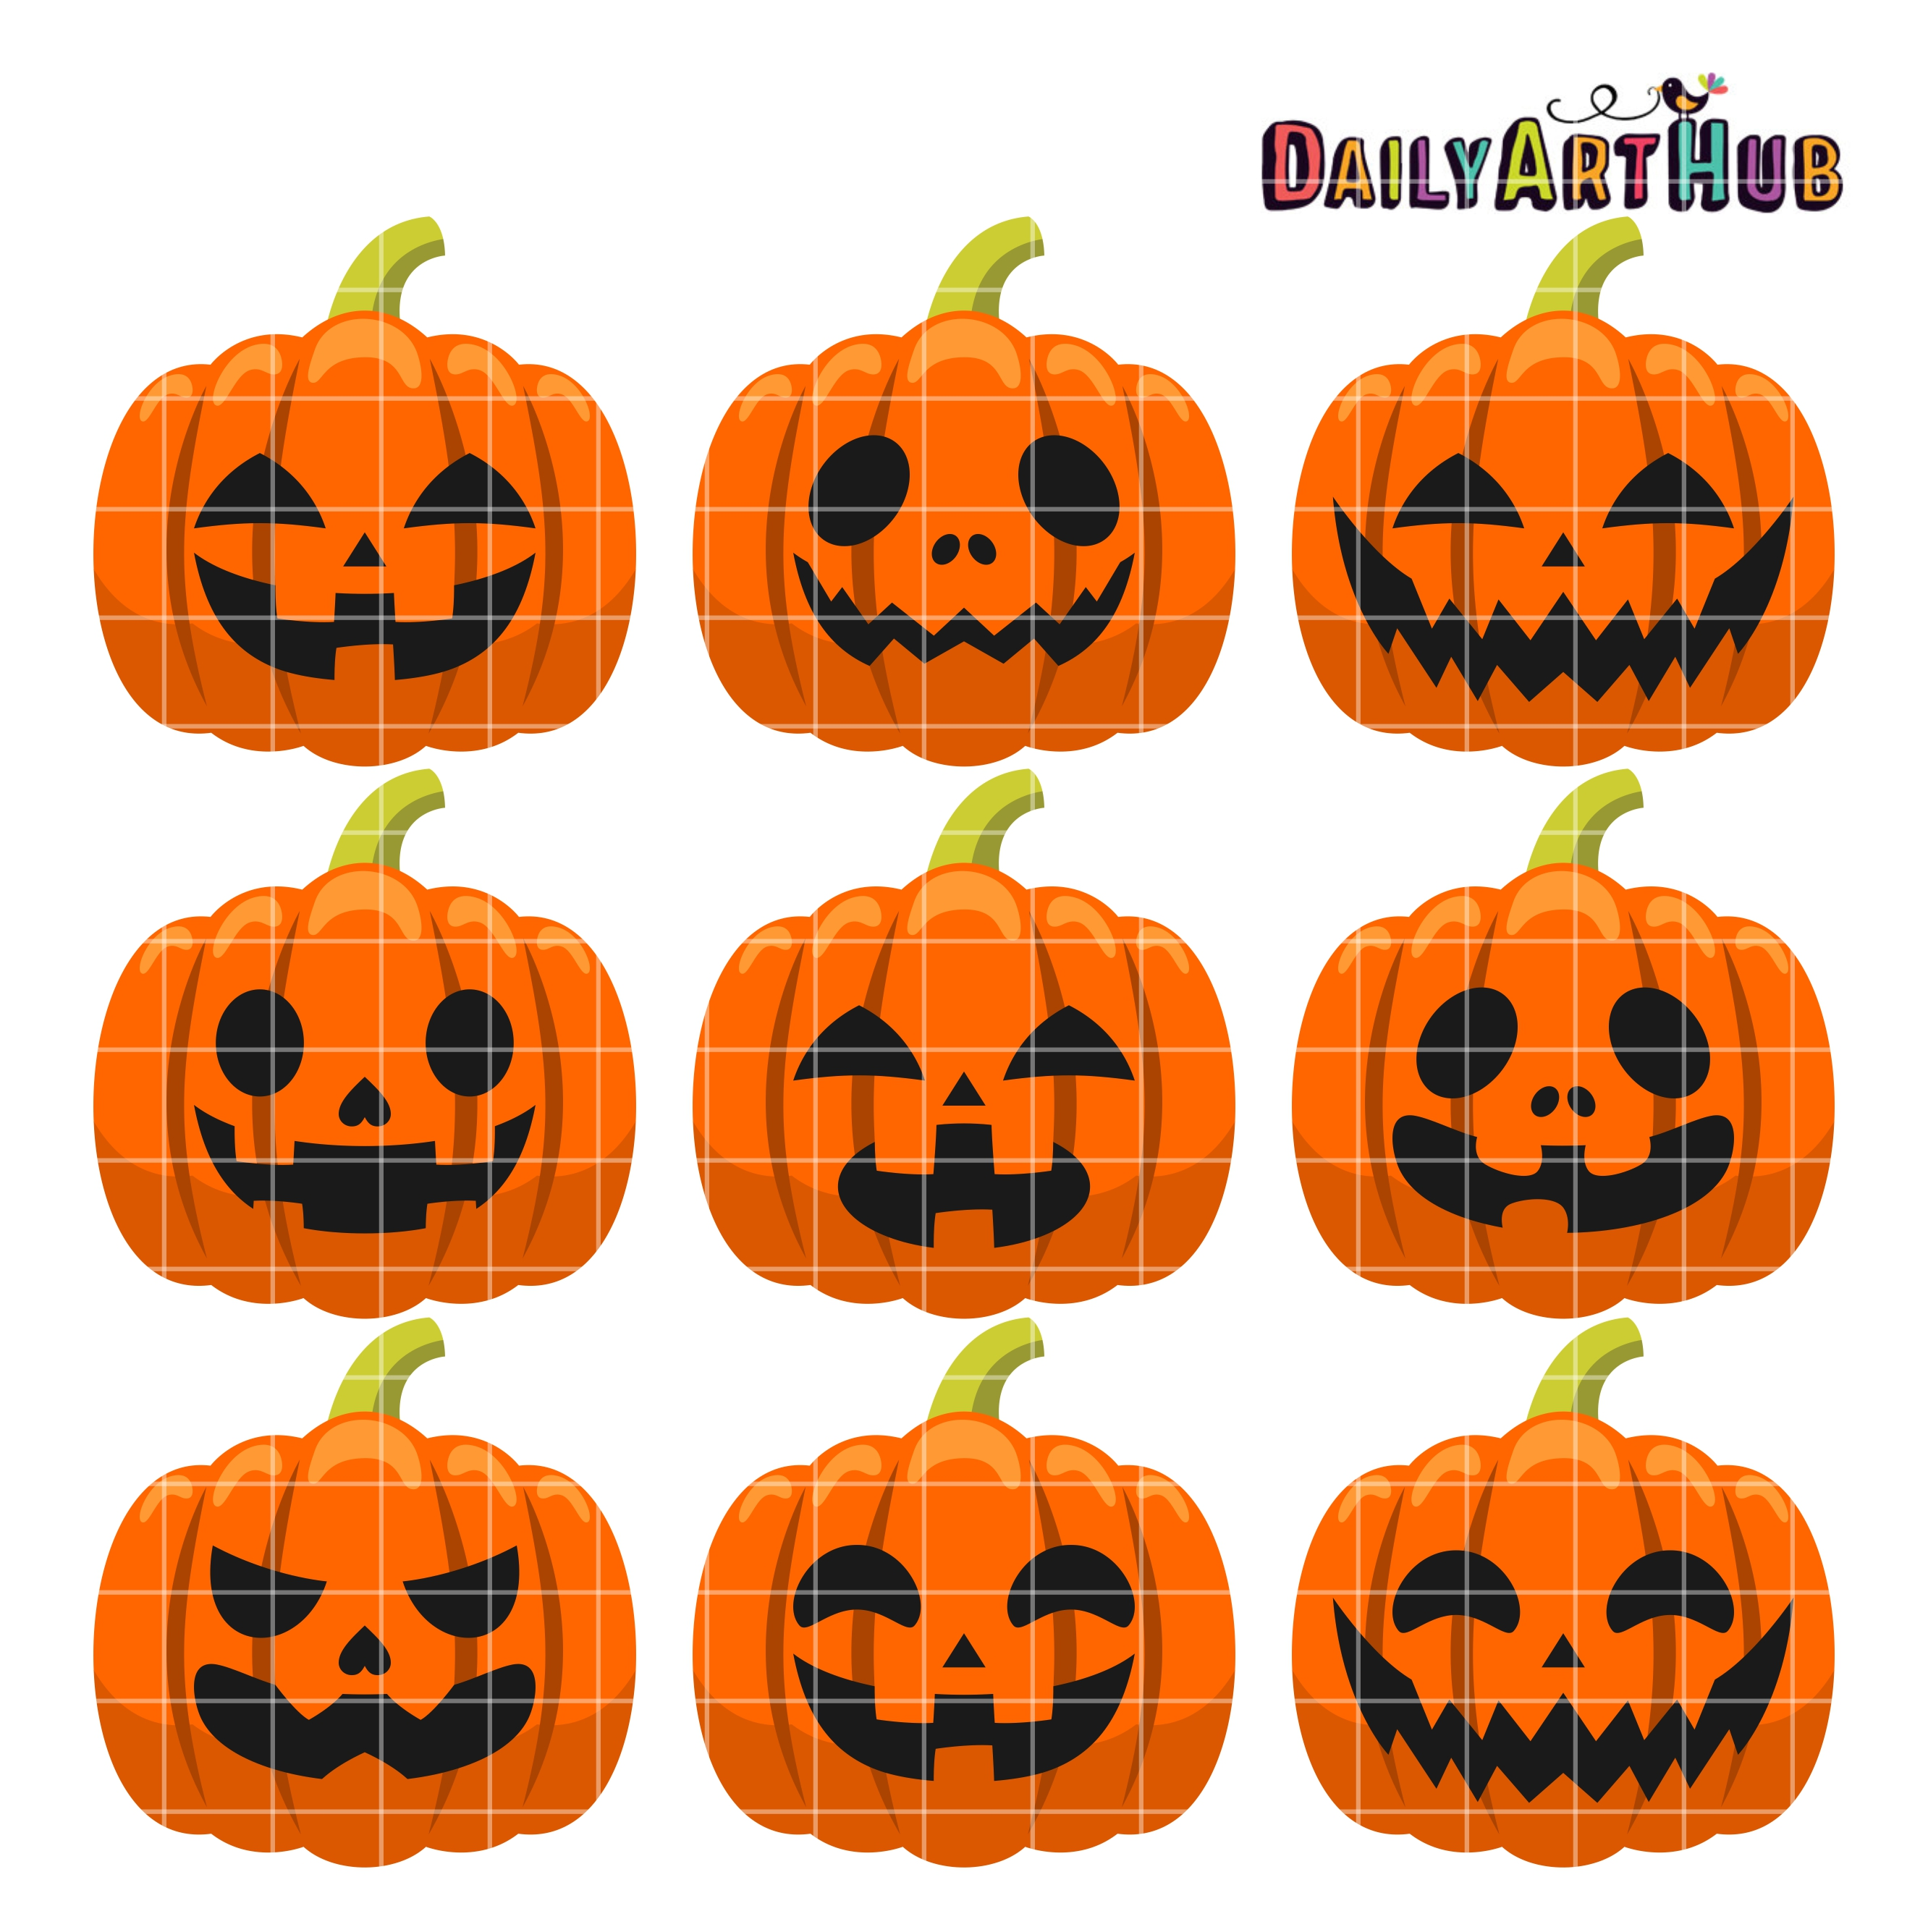 Halloween Pumpkin Heads Clip Art Set Daily Art Hub